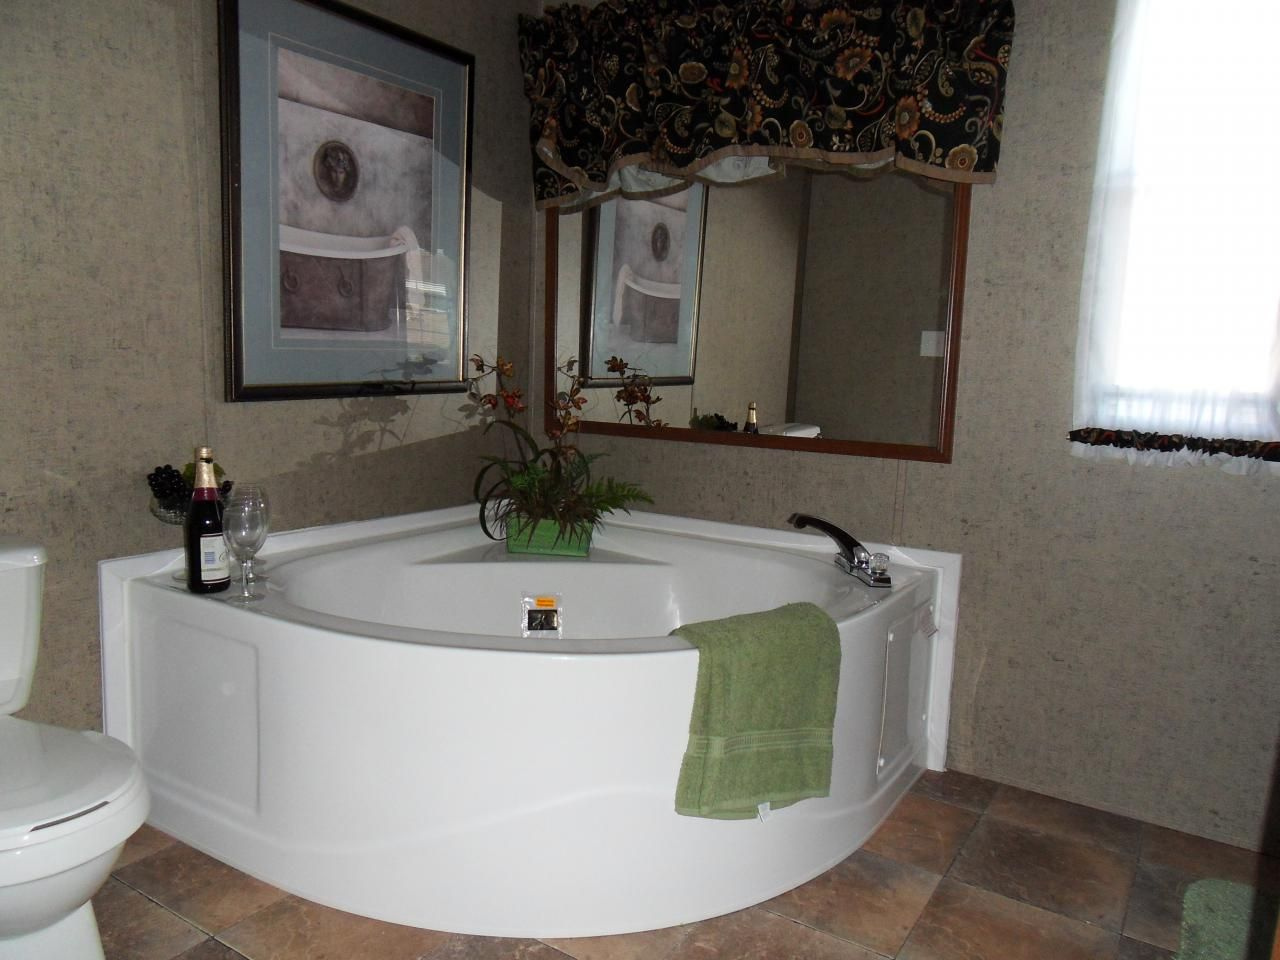 Mobile Home Bathrooms 1997 single wide mobile home bathroom | faith-homes - single wide